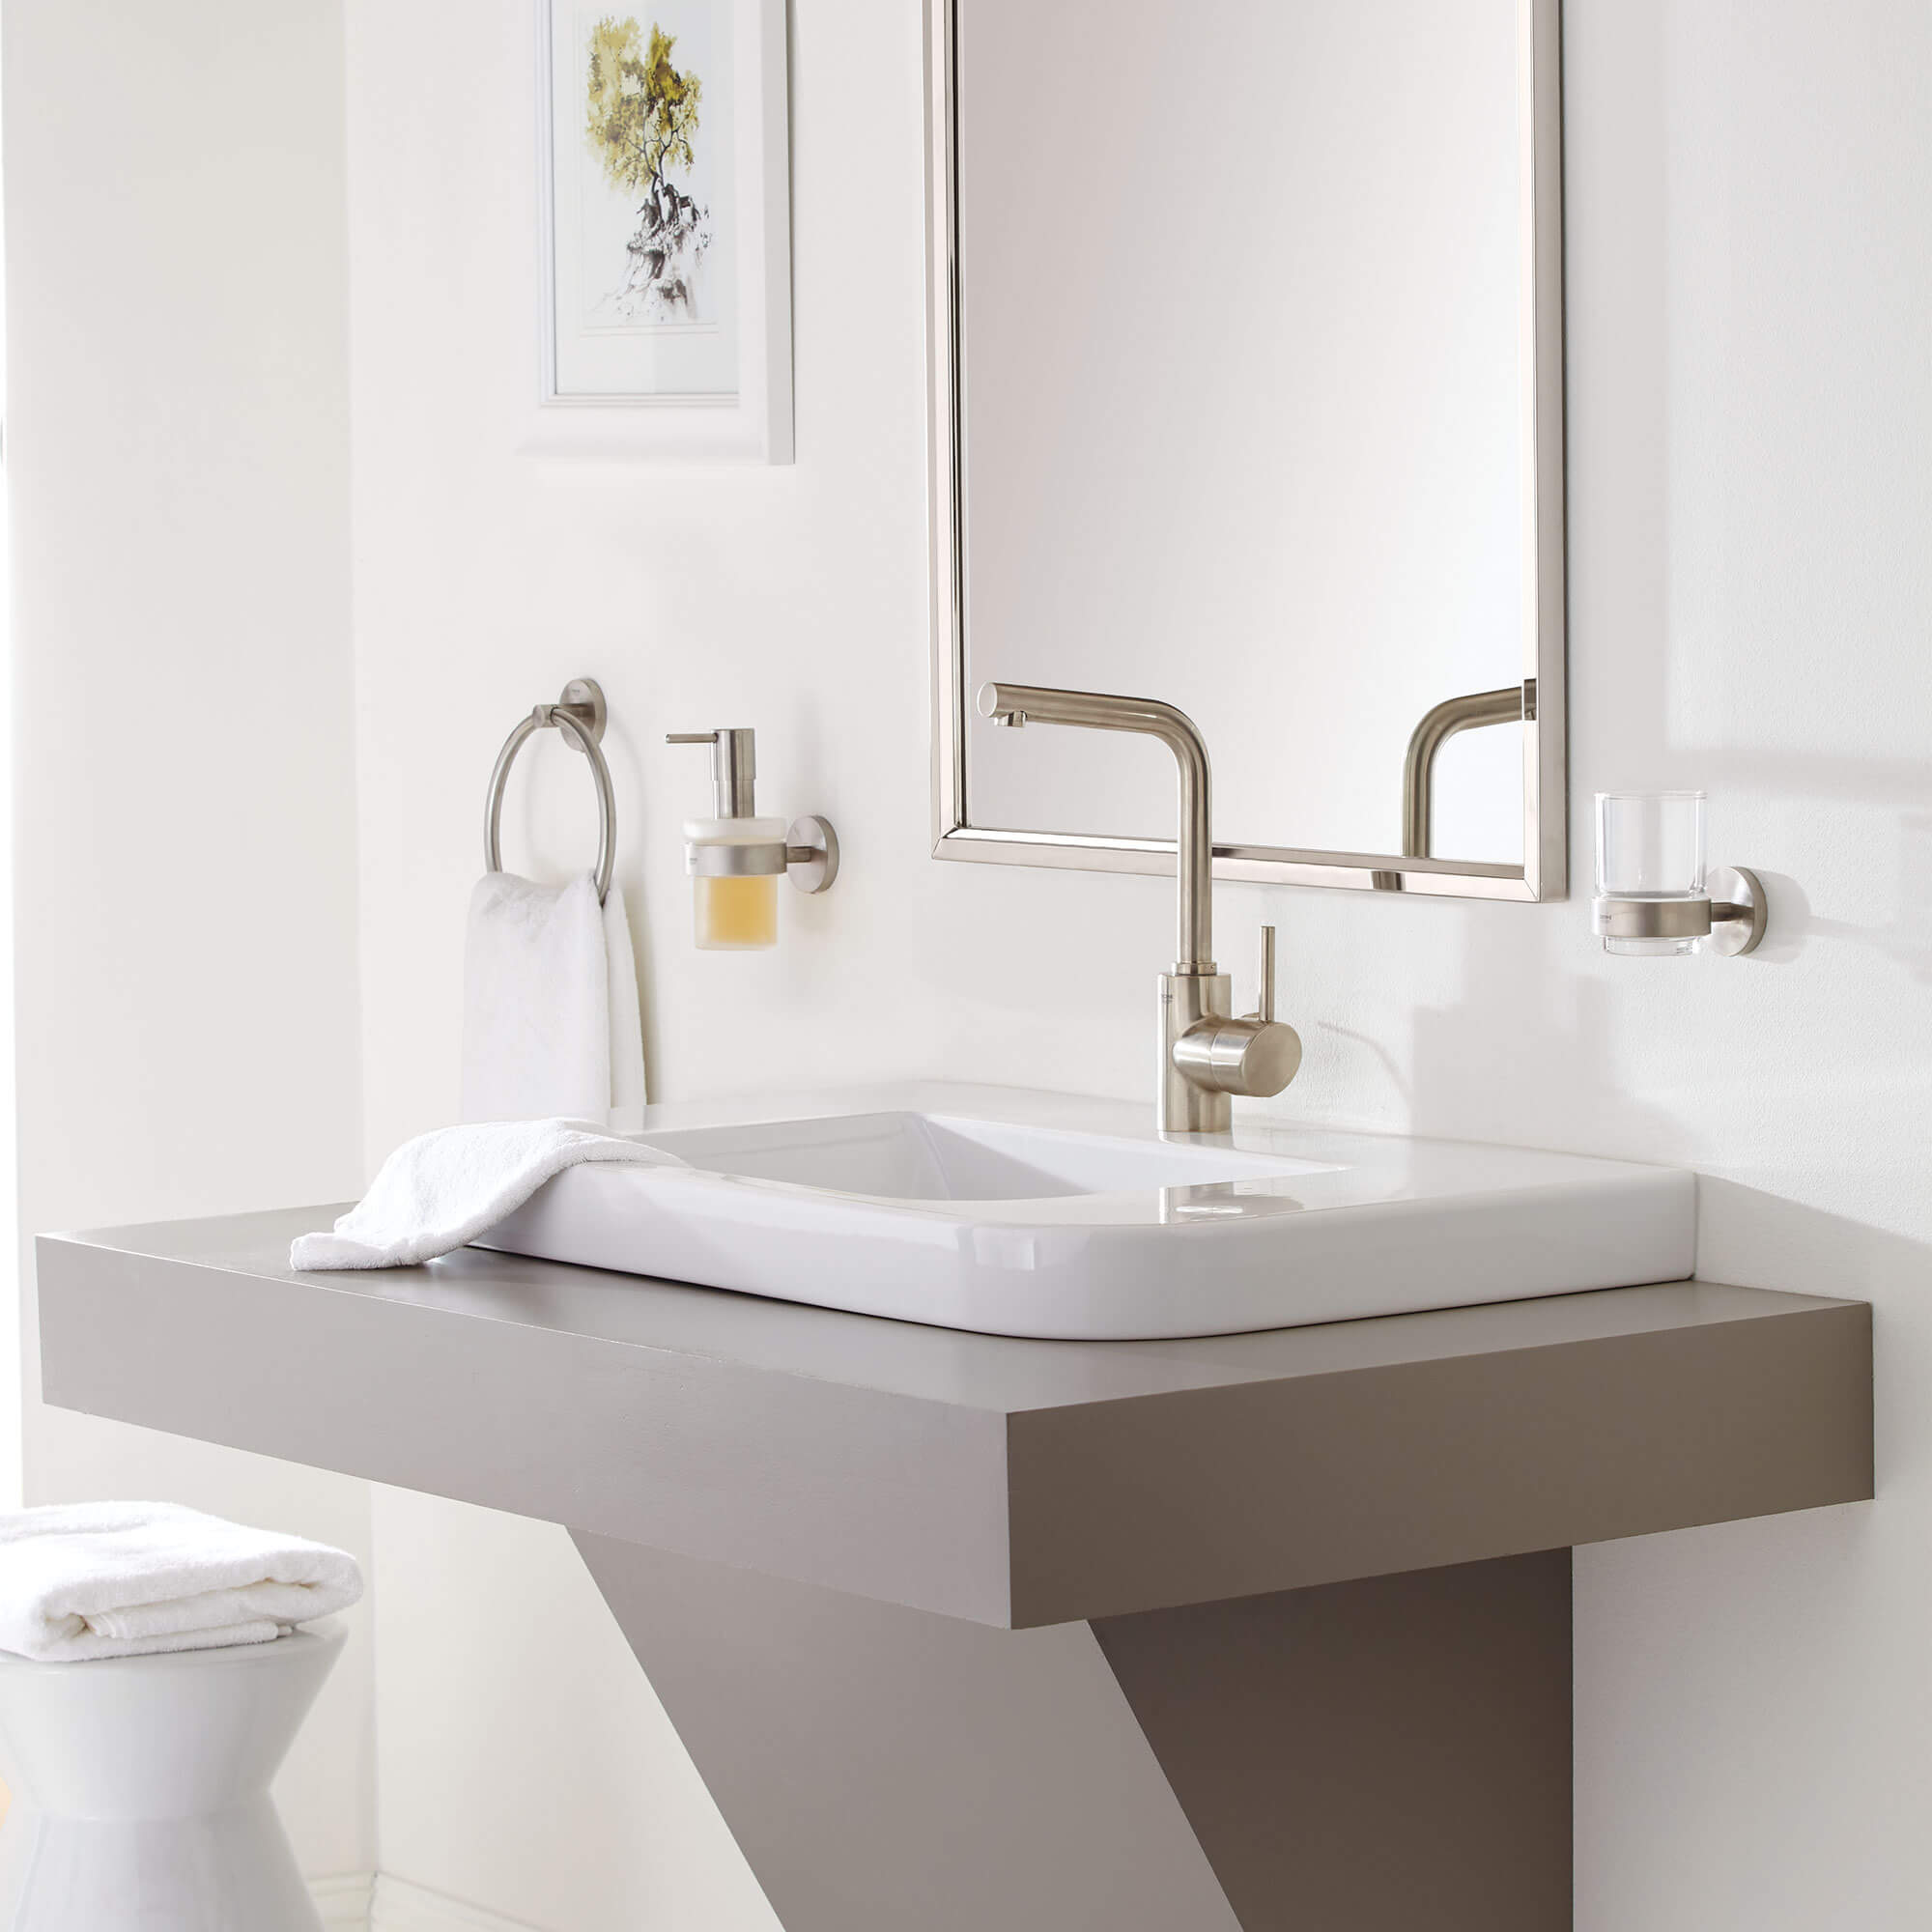 Concetto Bathroom Faucet with Mirror and Above Counter Sink